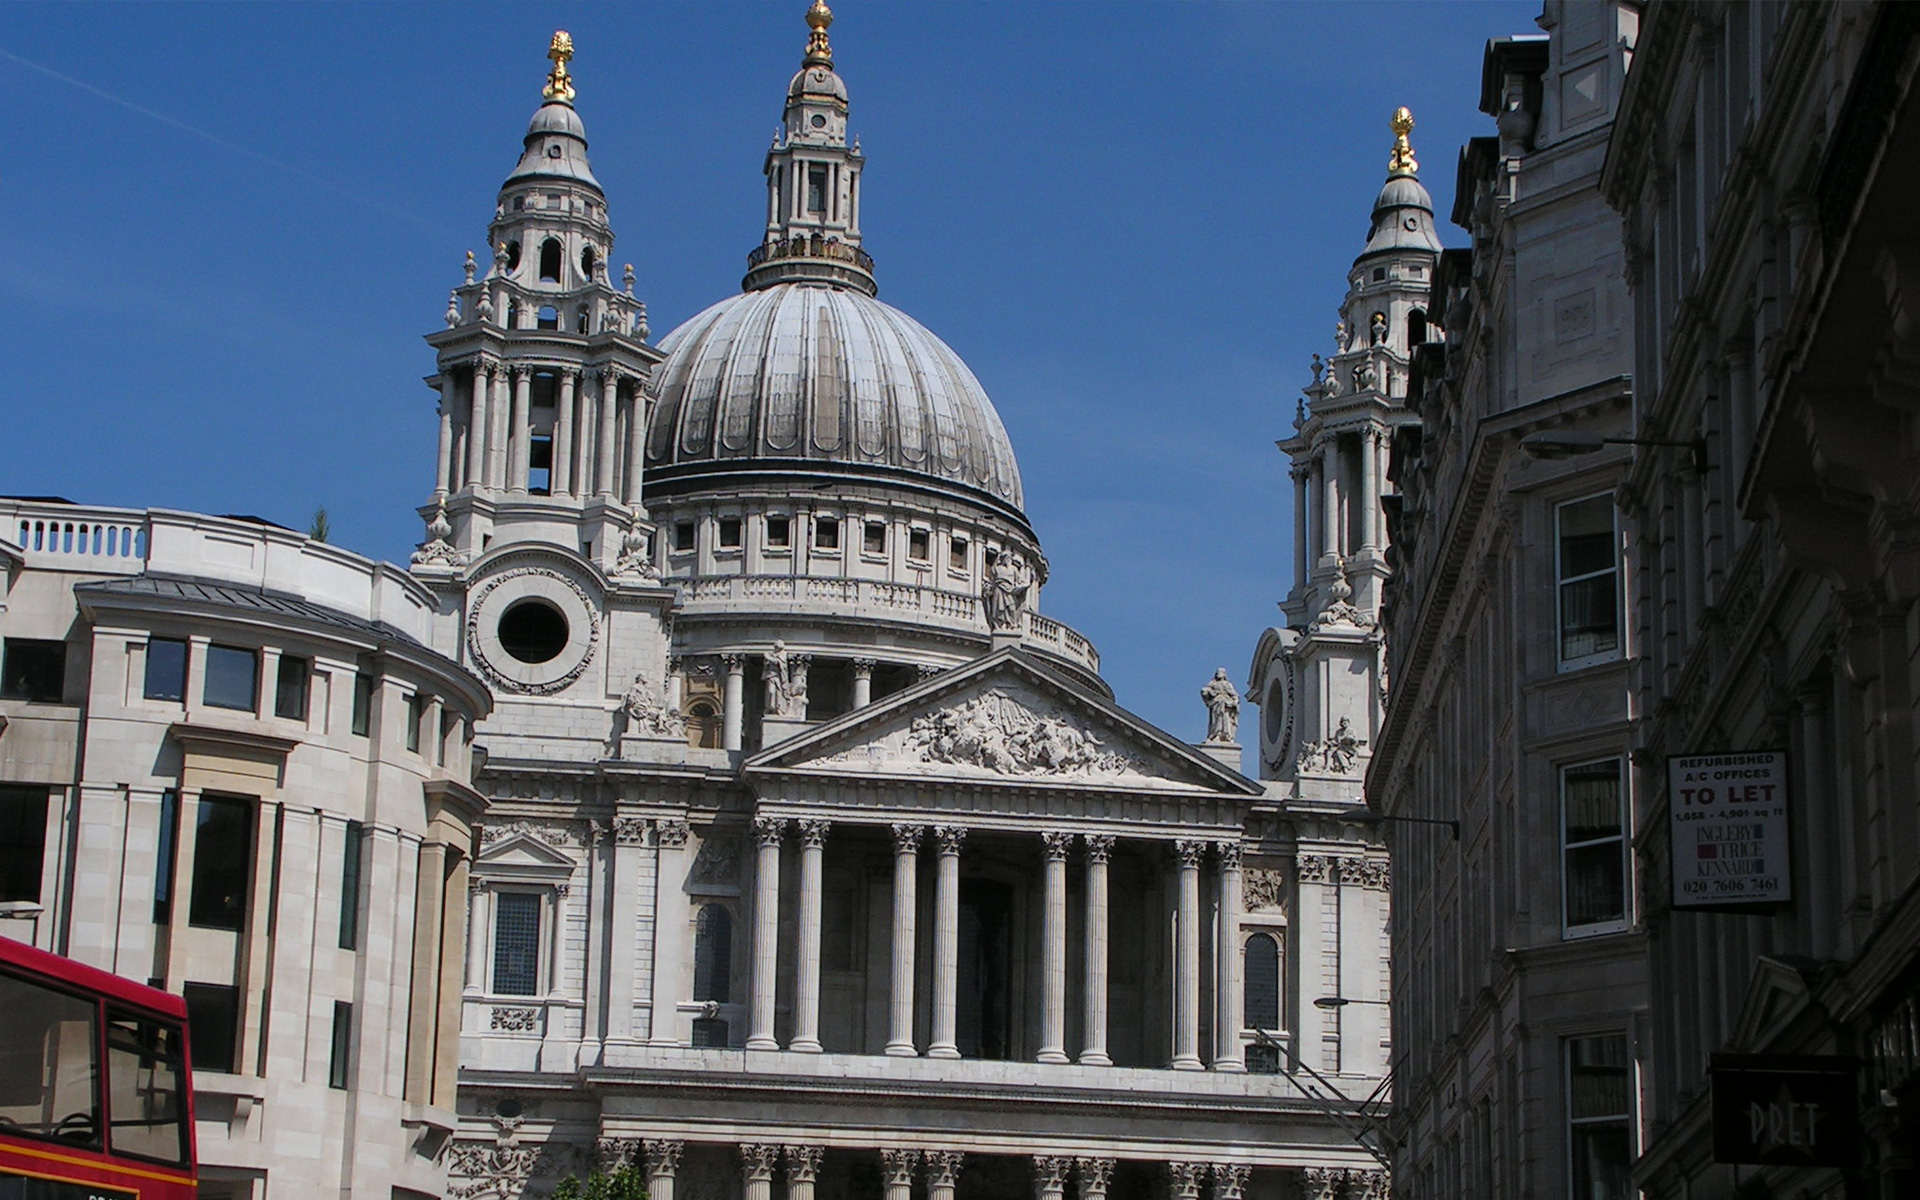 Bakers of Danbury - Conservation works to St Pauls Cathedral, London